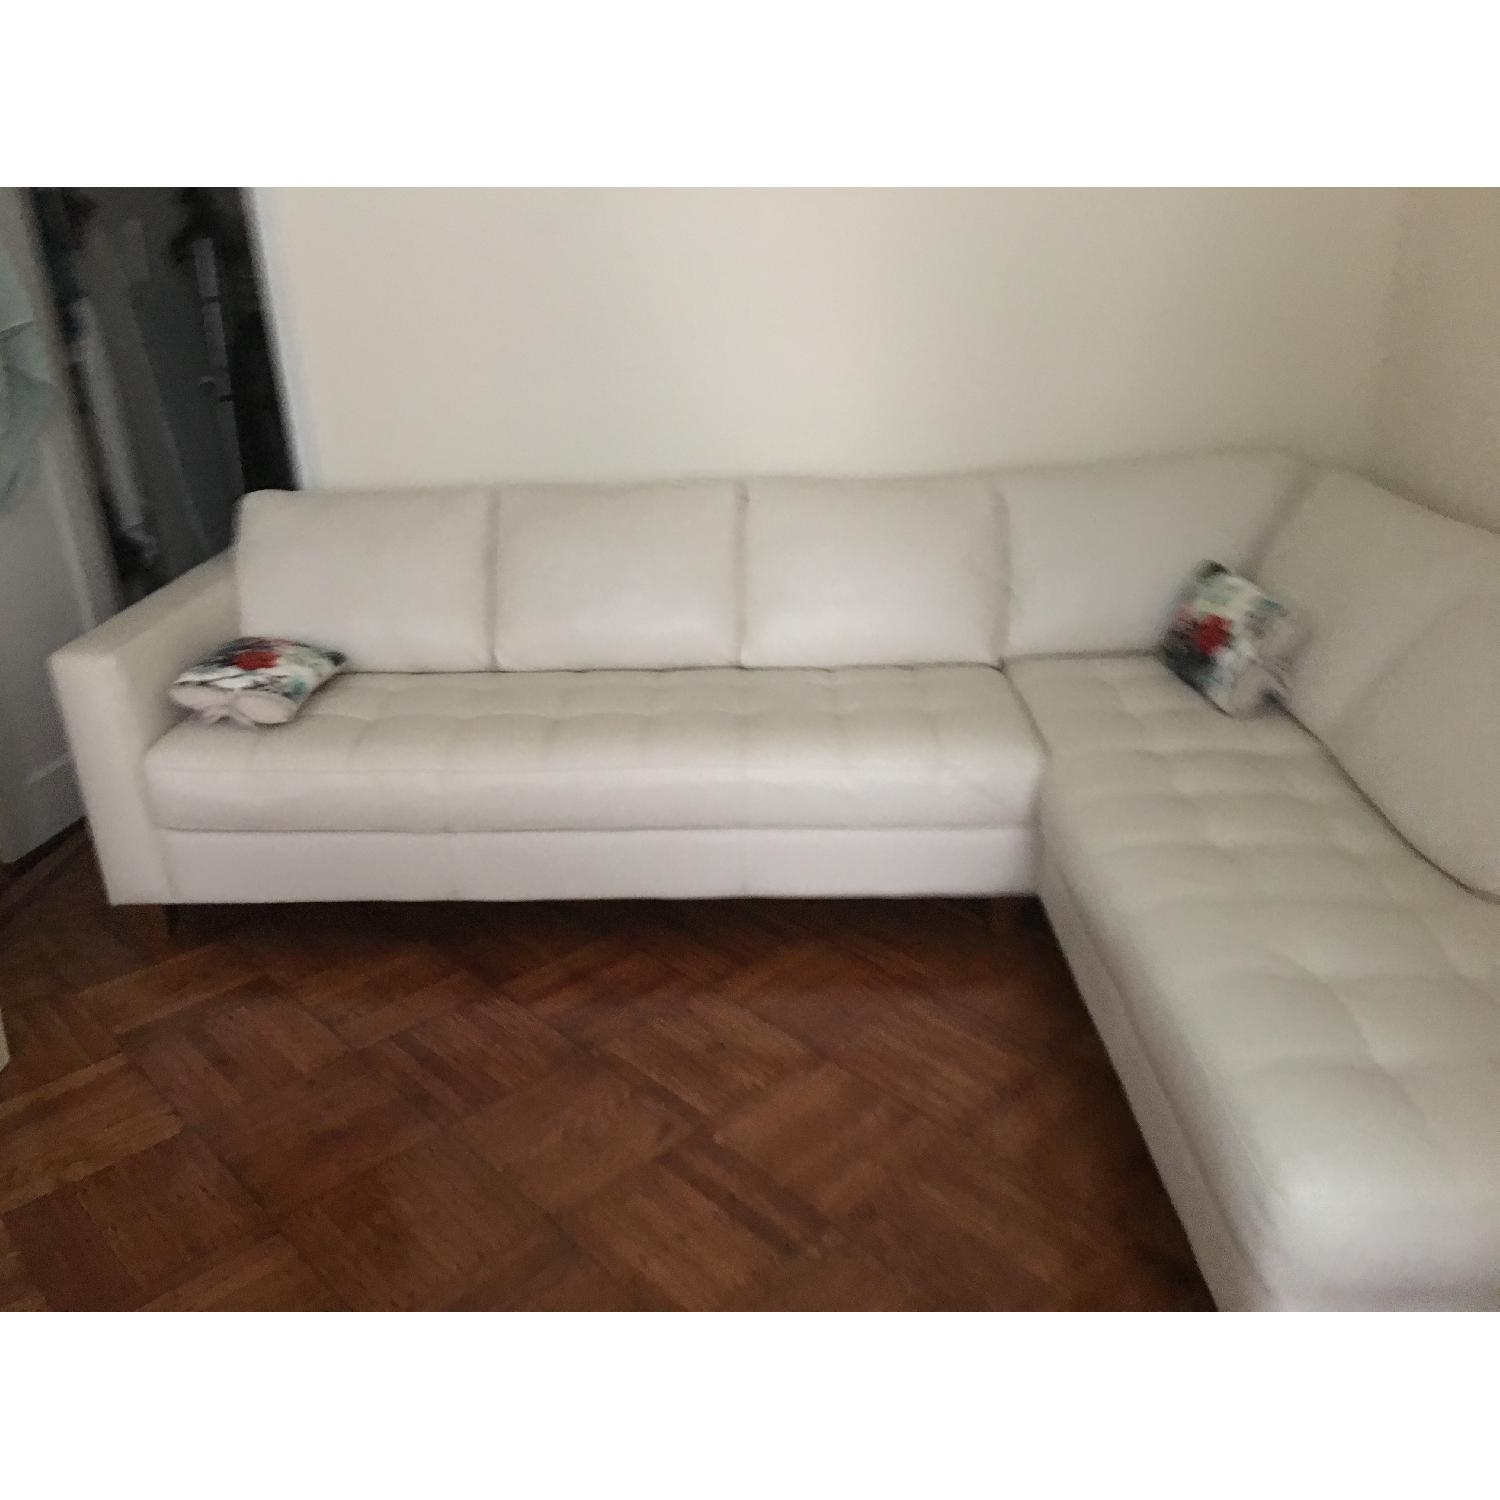 Macy's Italian Quilted Leather Sectional Sofa - image-2